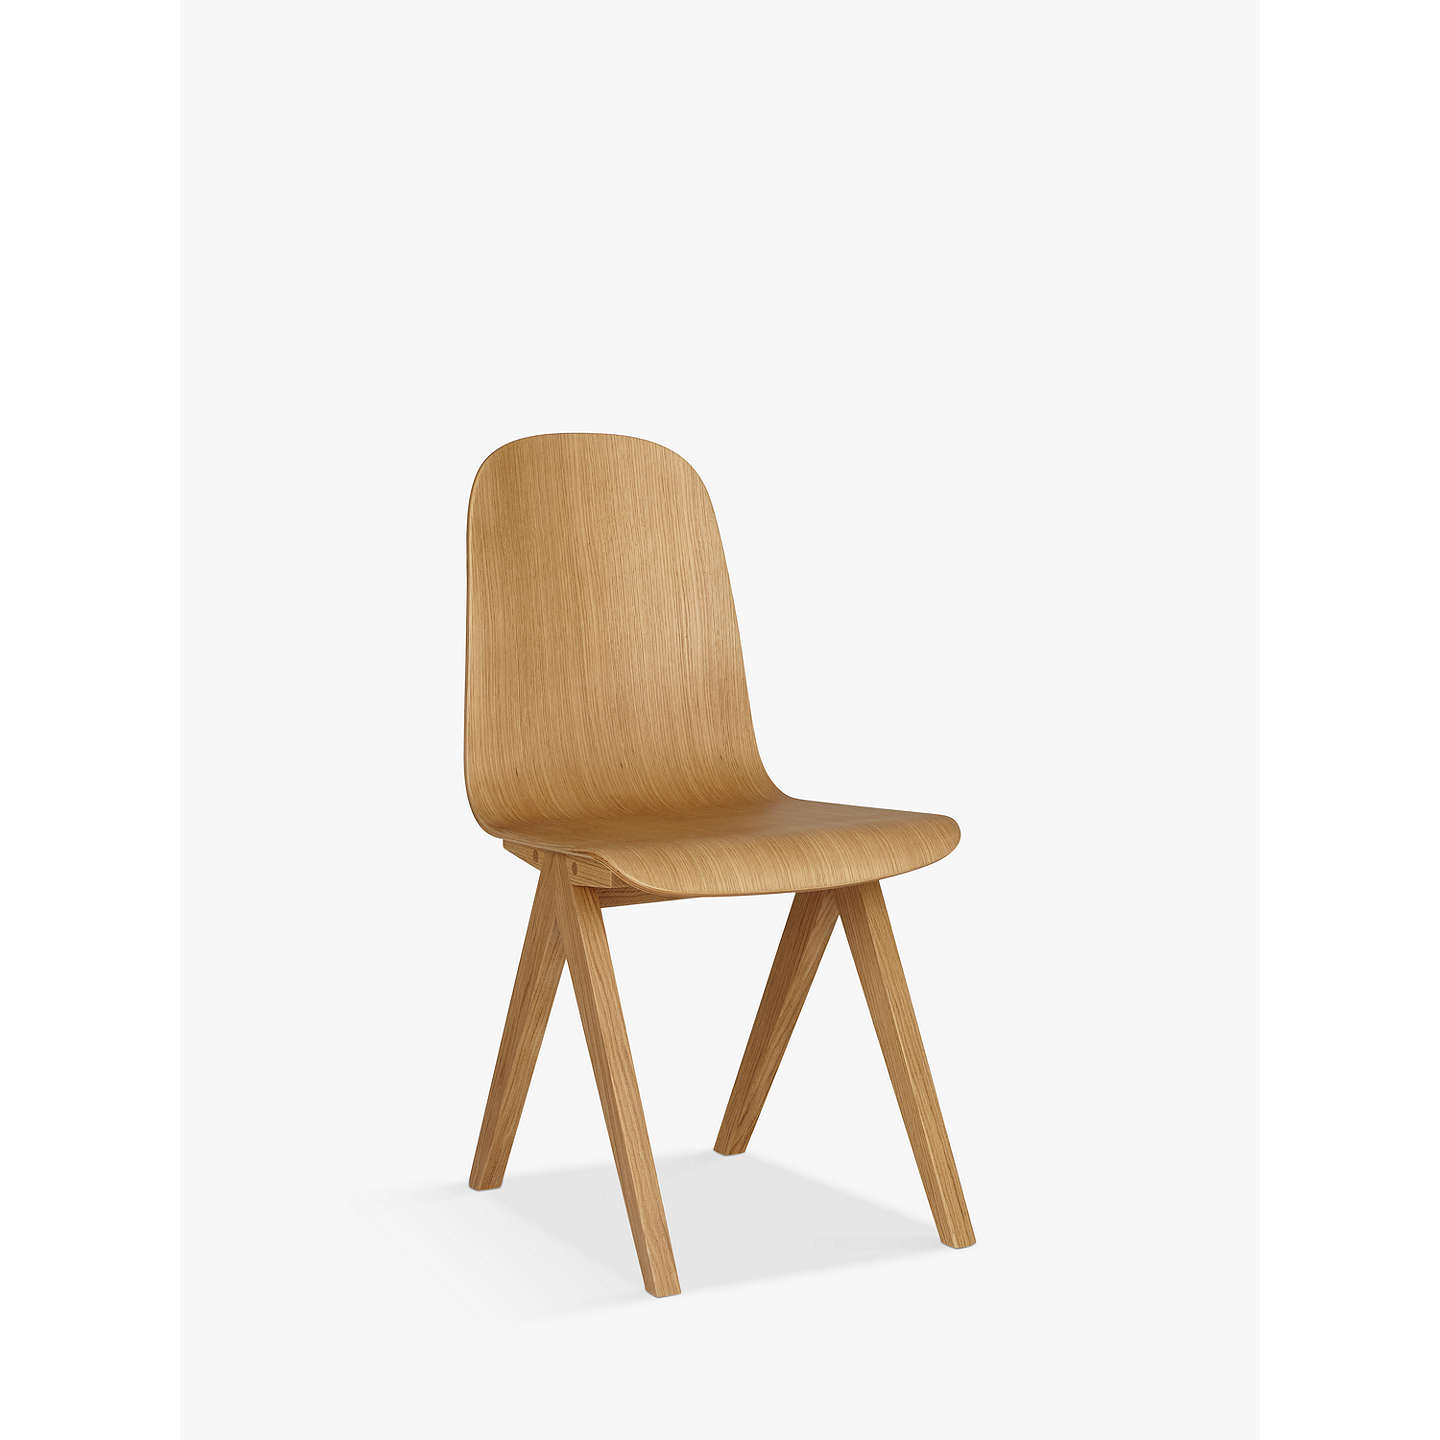 BuyBethan Gray for John Lewis Newman Plywood